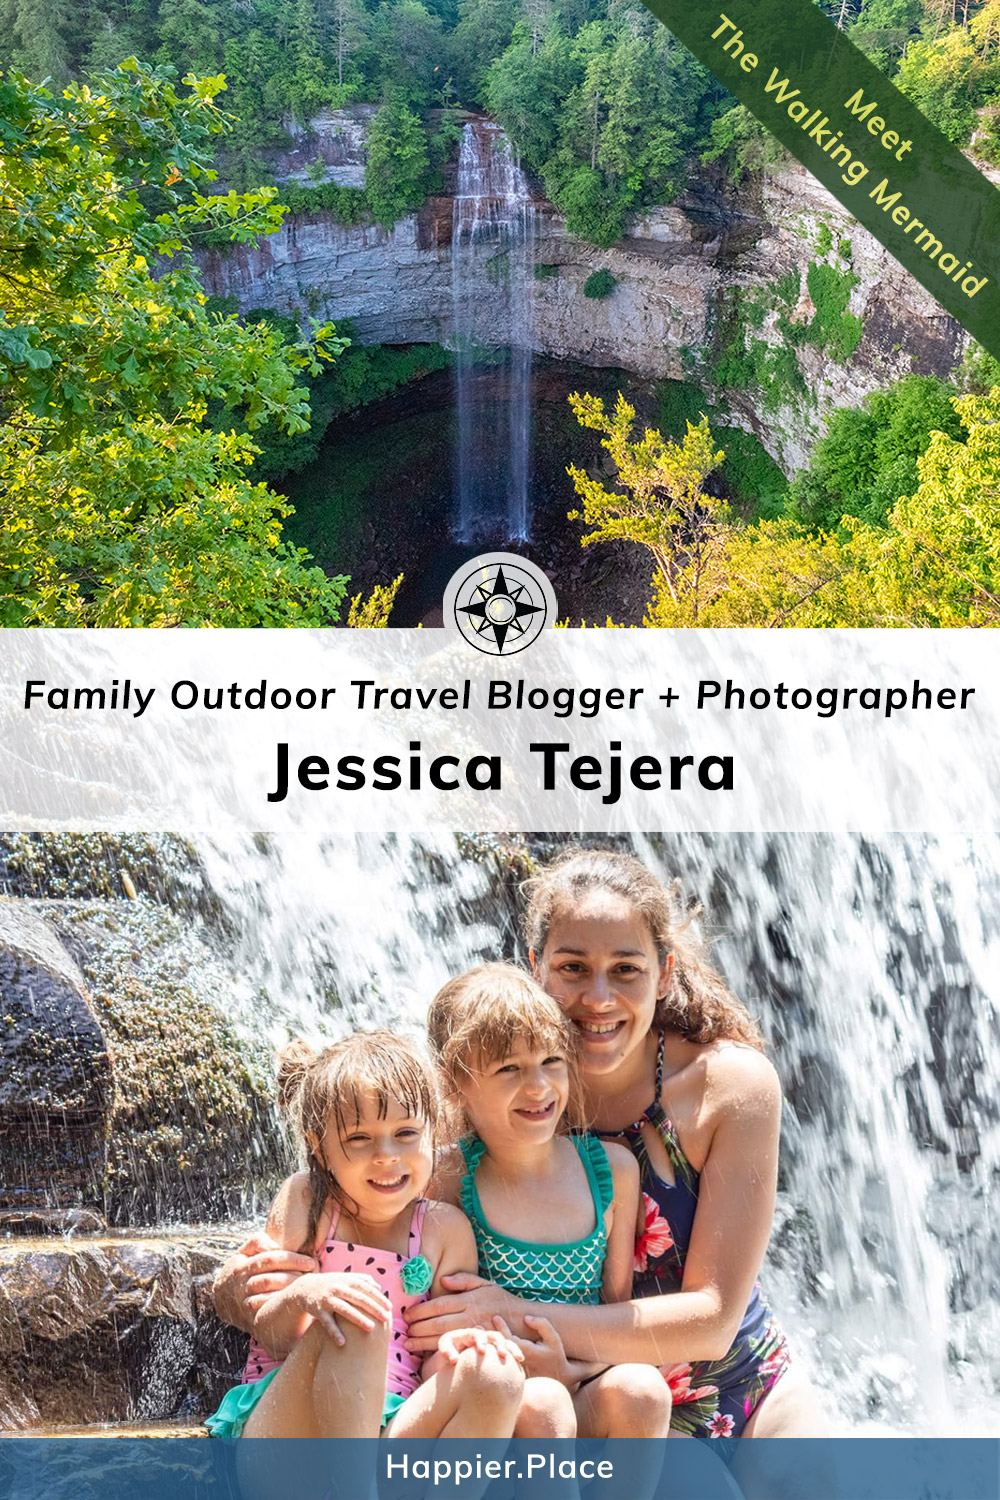 Jessica Tejera, The Walking Mermaid, Family Outdoor Travel Blogger and Photographer hiking through fall colors. #HappierPlace #blogger #outdoors #family #travel #outdoorblogger #travelblogger #familyblogger #writer #interview